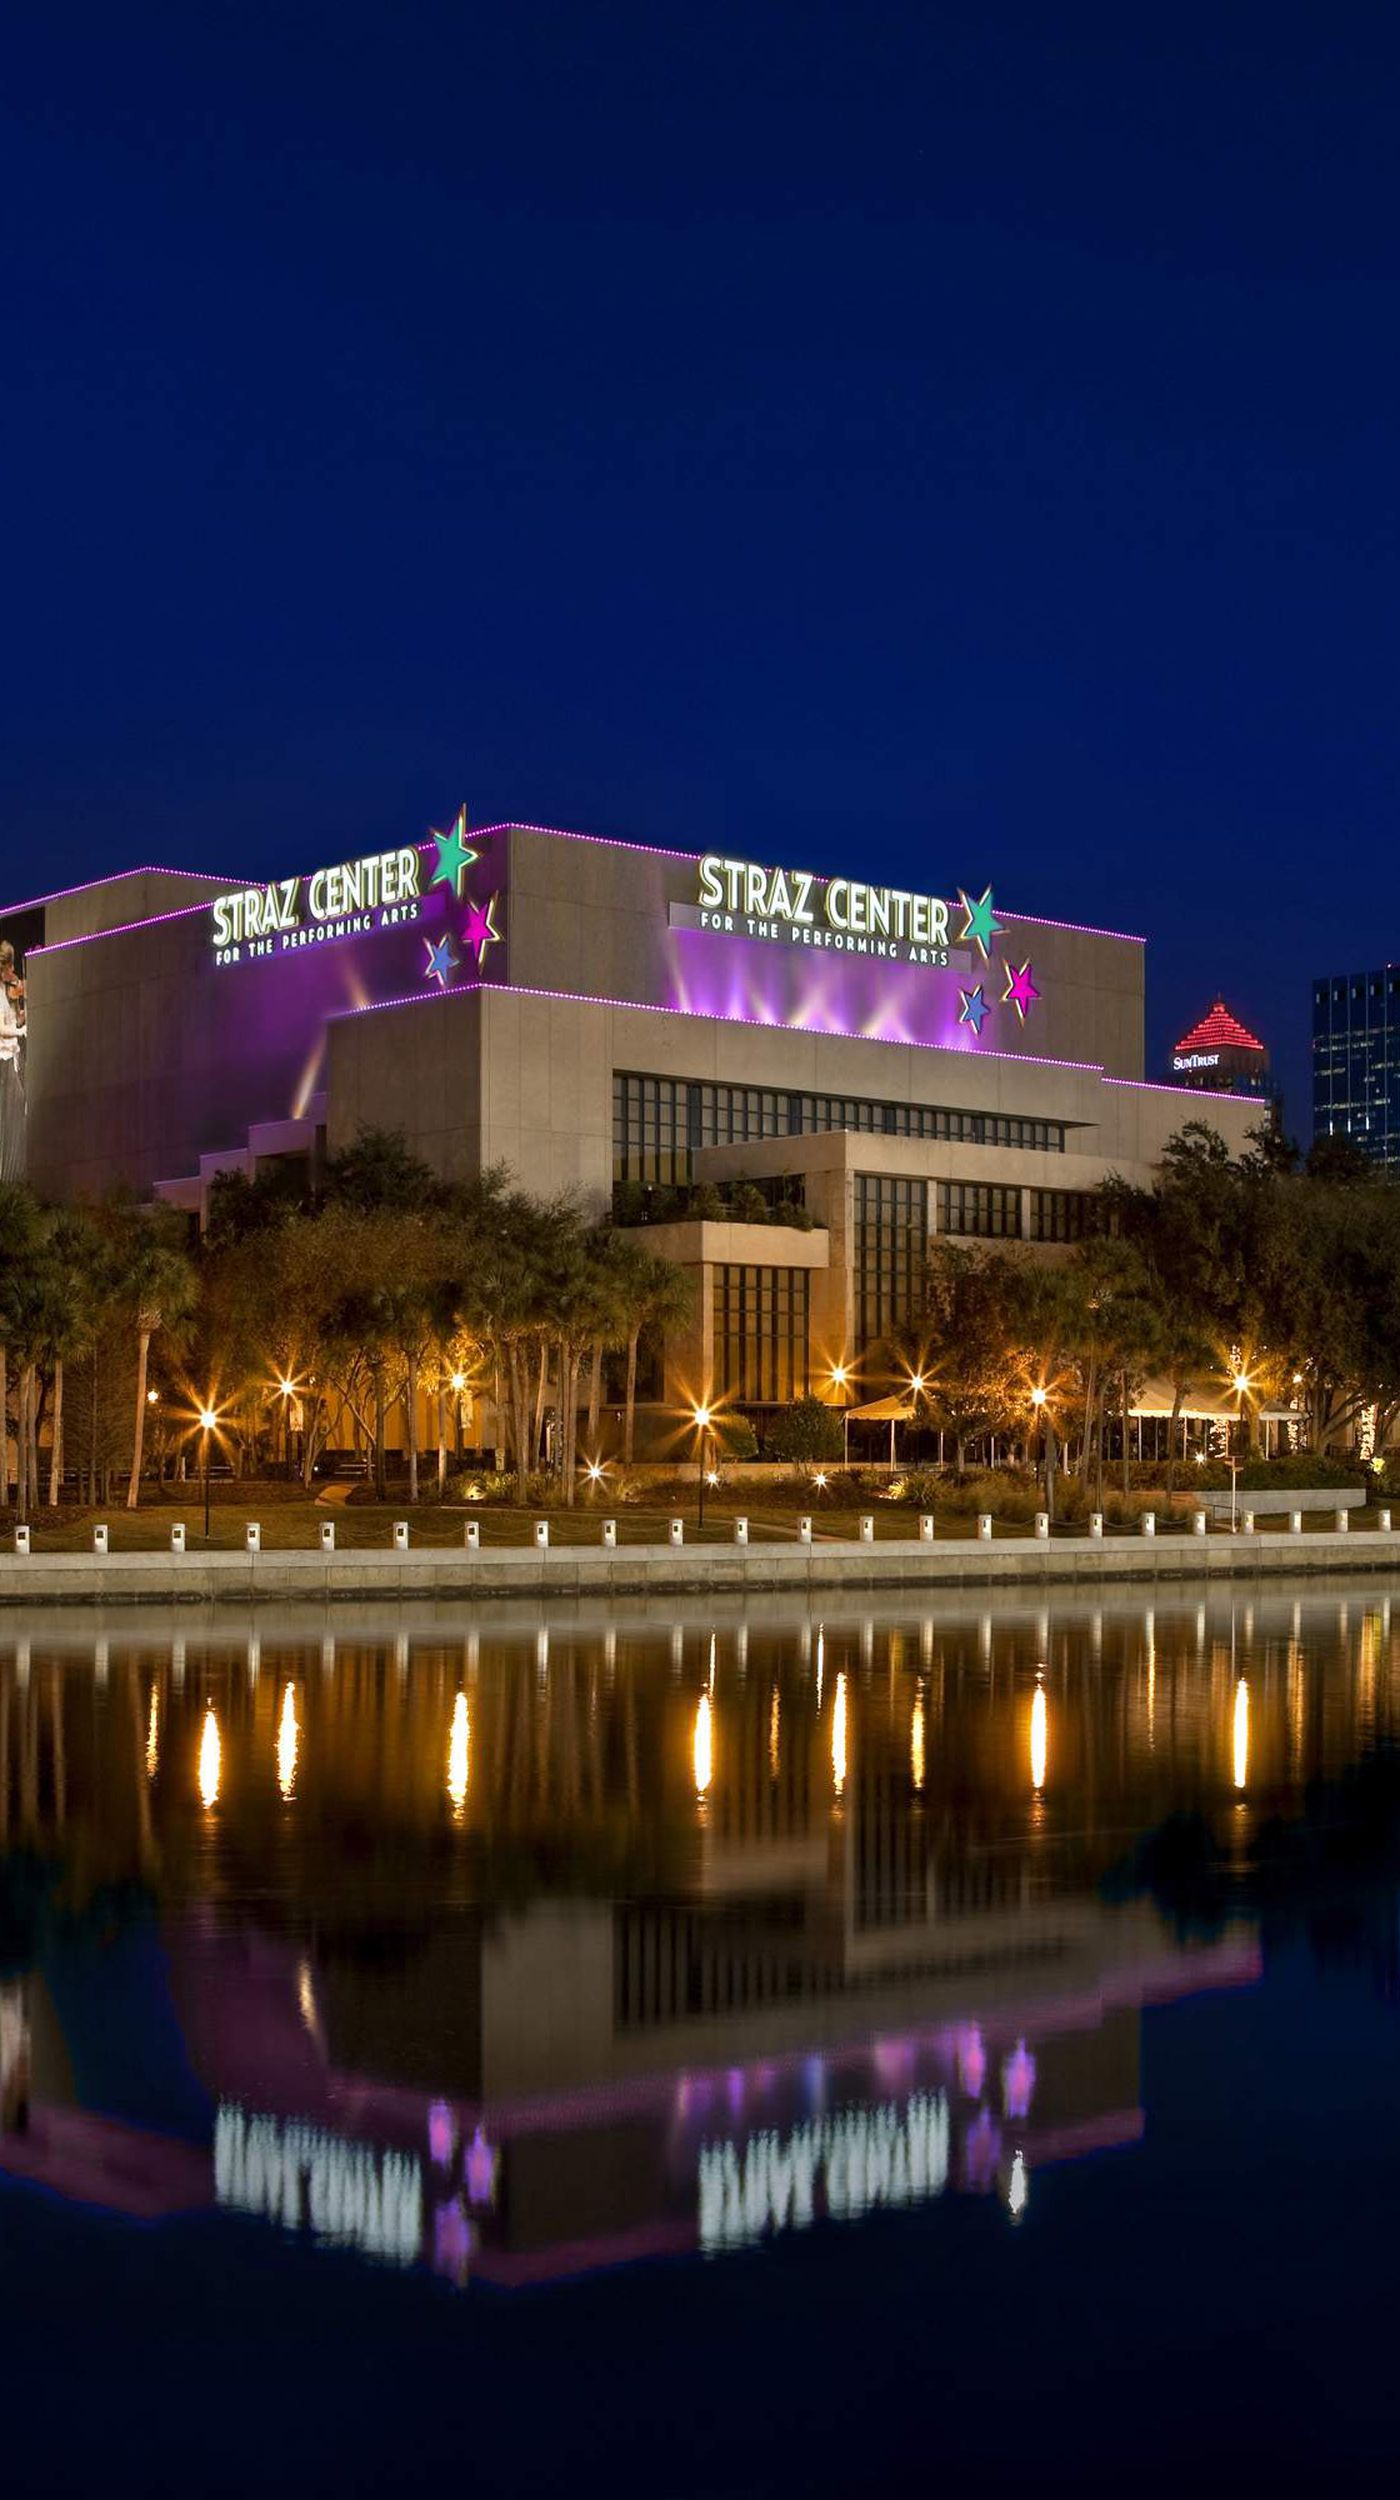 The Straz Wants More Parking On The Riverfront. City Hall Inside Tampa Bay Performing Arts Center Schedule